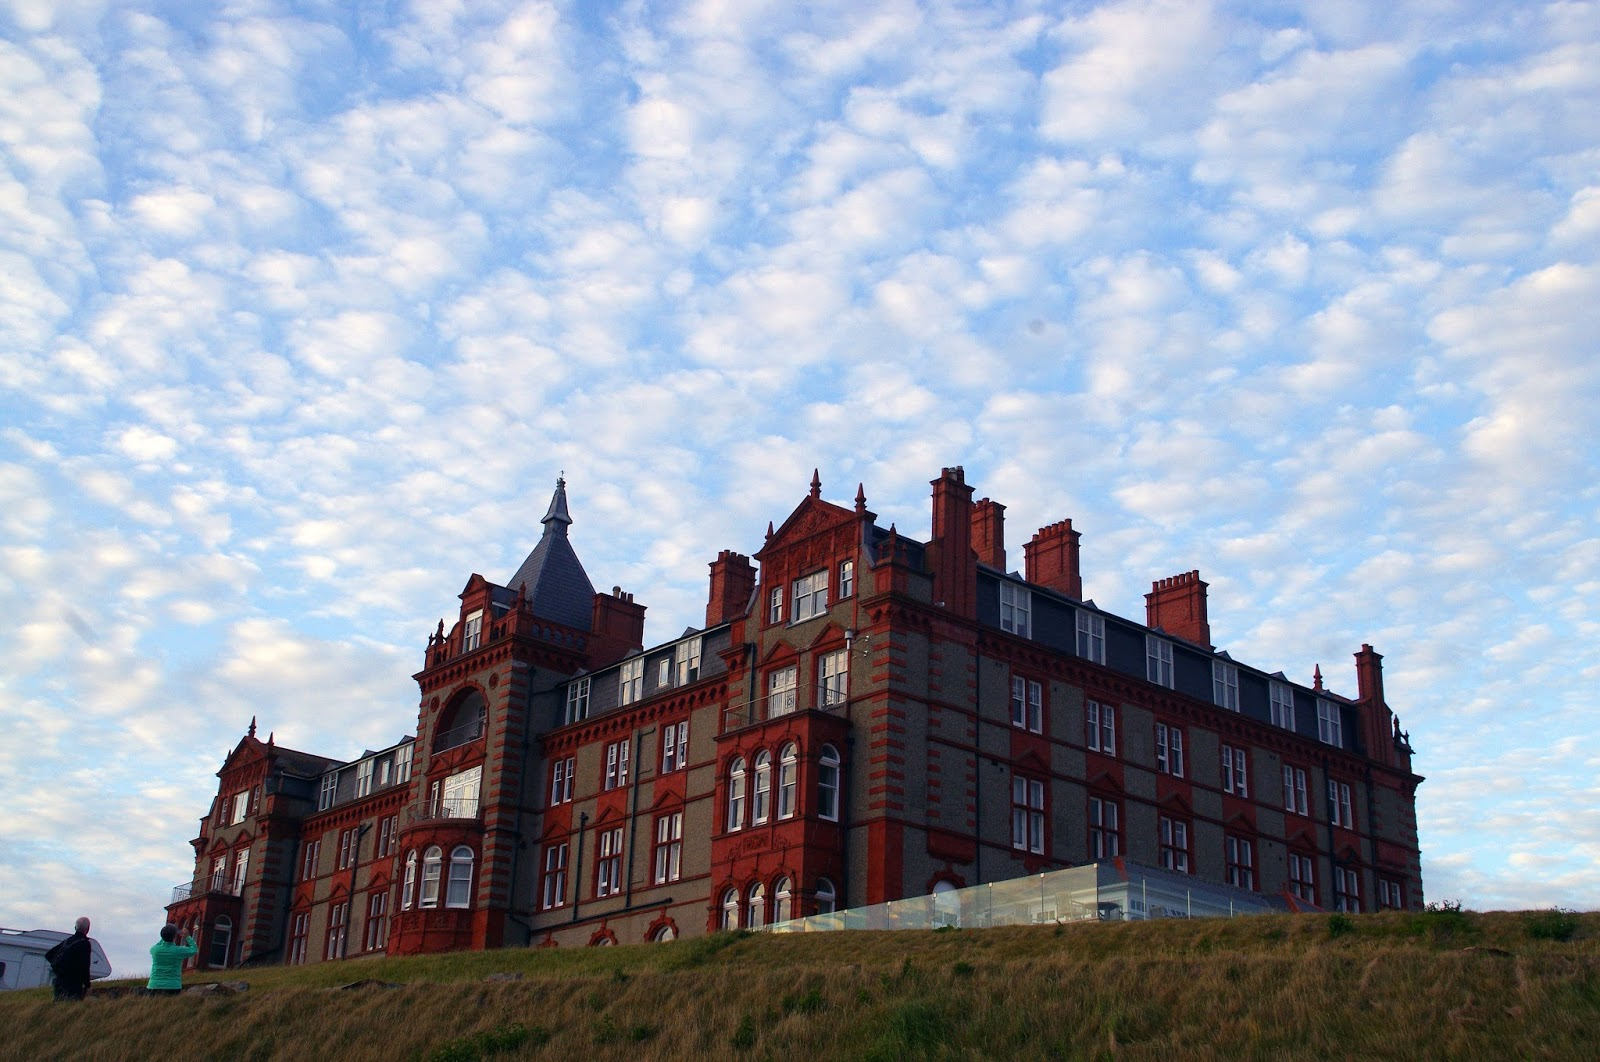 The Headland Hotel – Our Cornish Sanctuary by the Sea